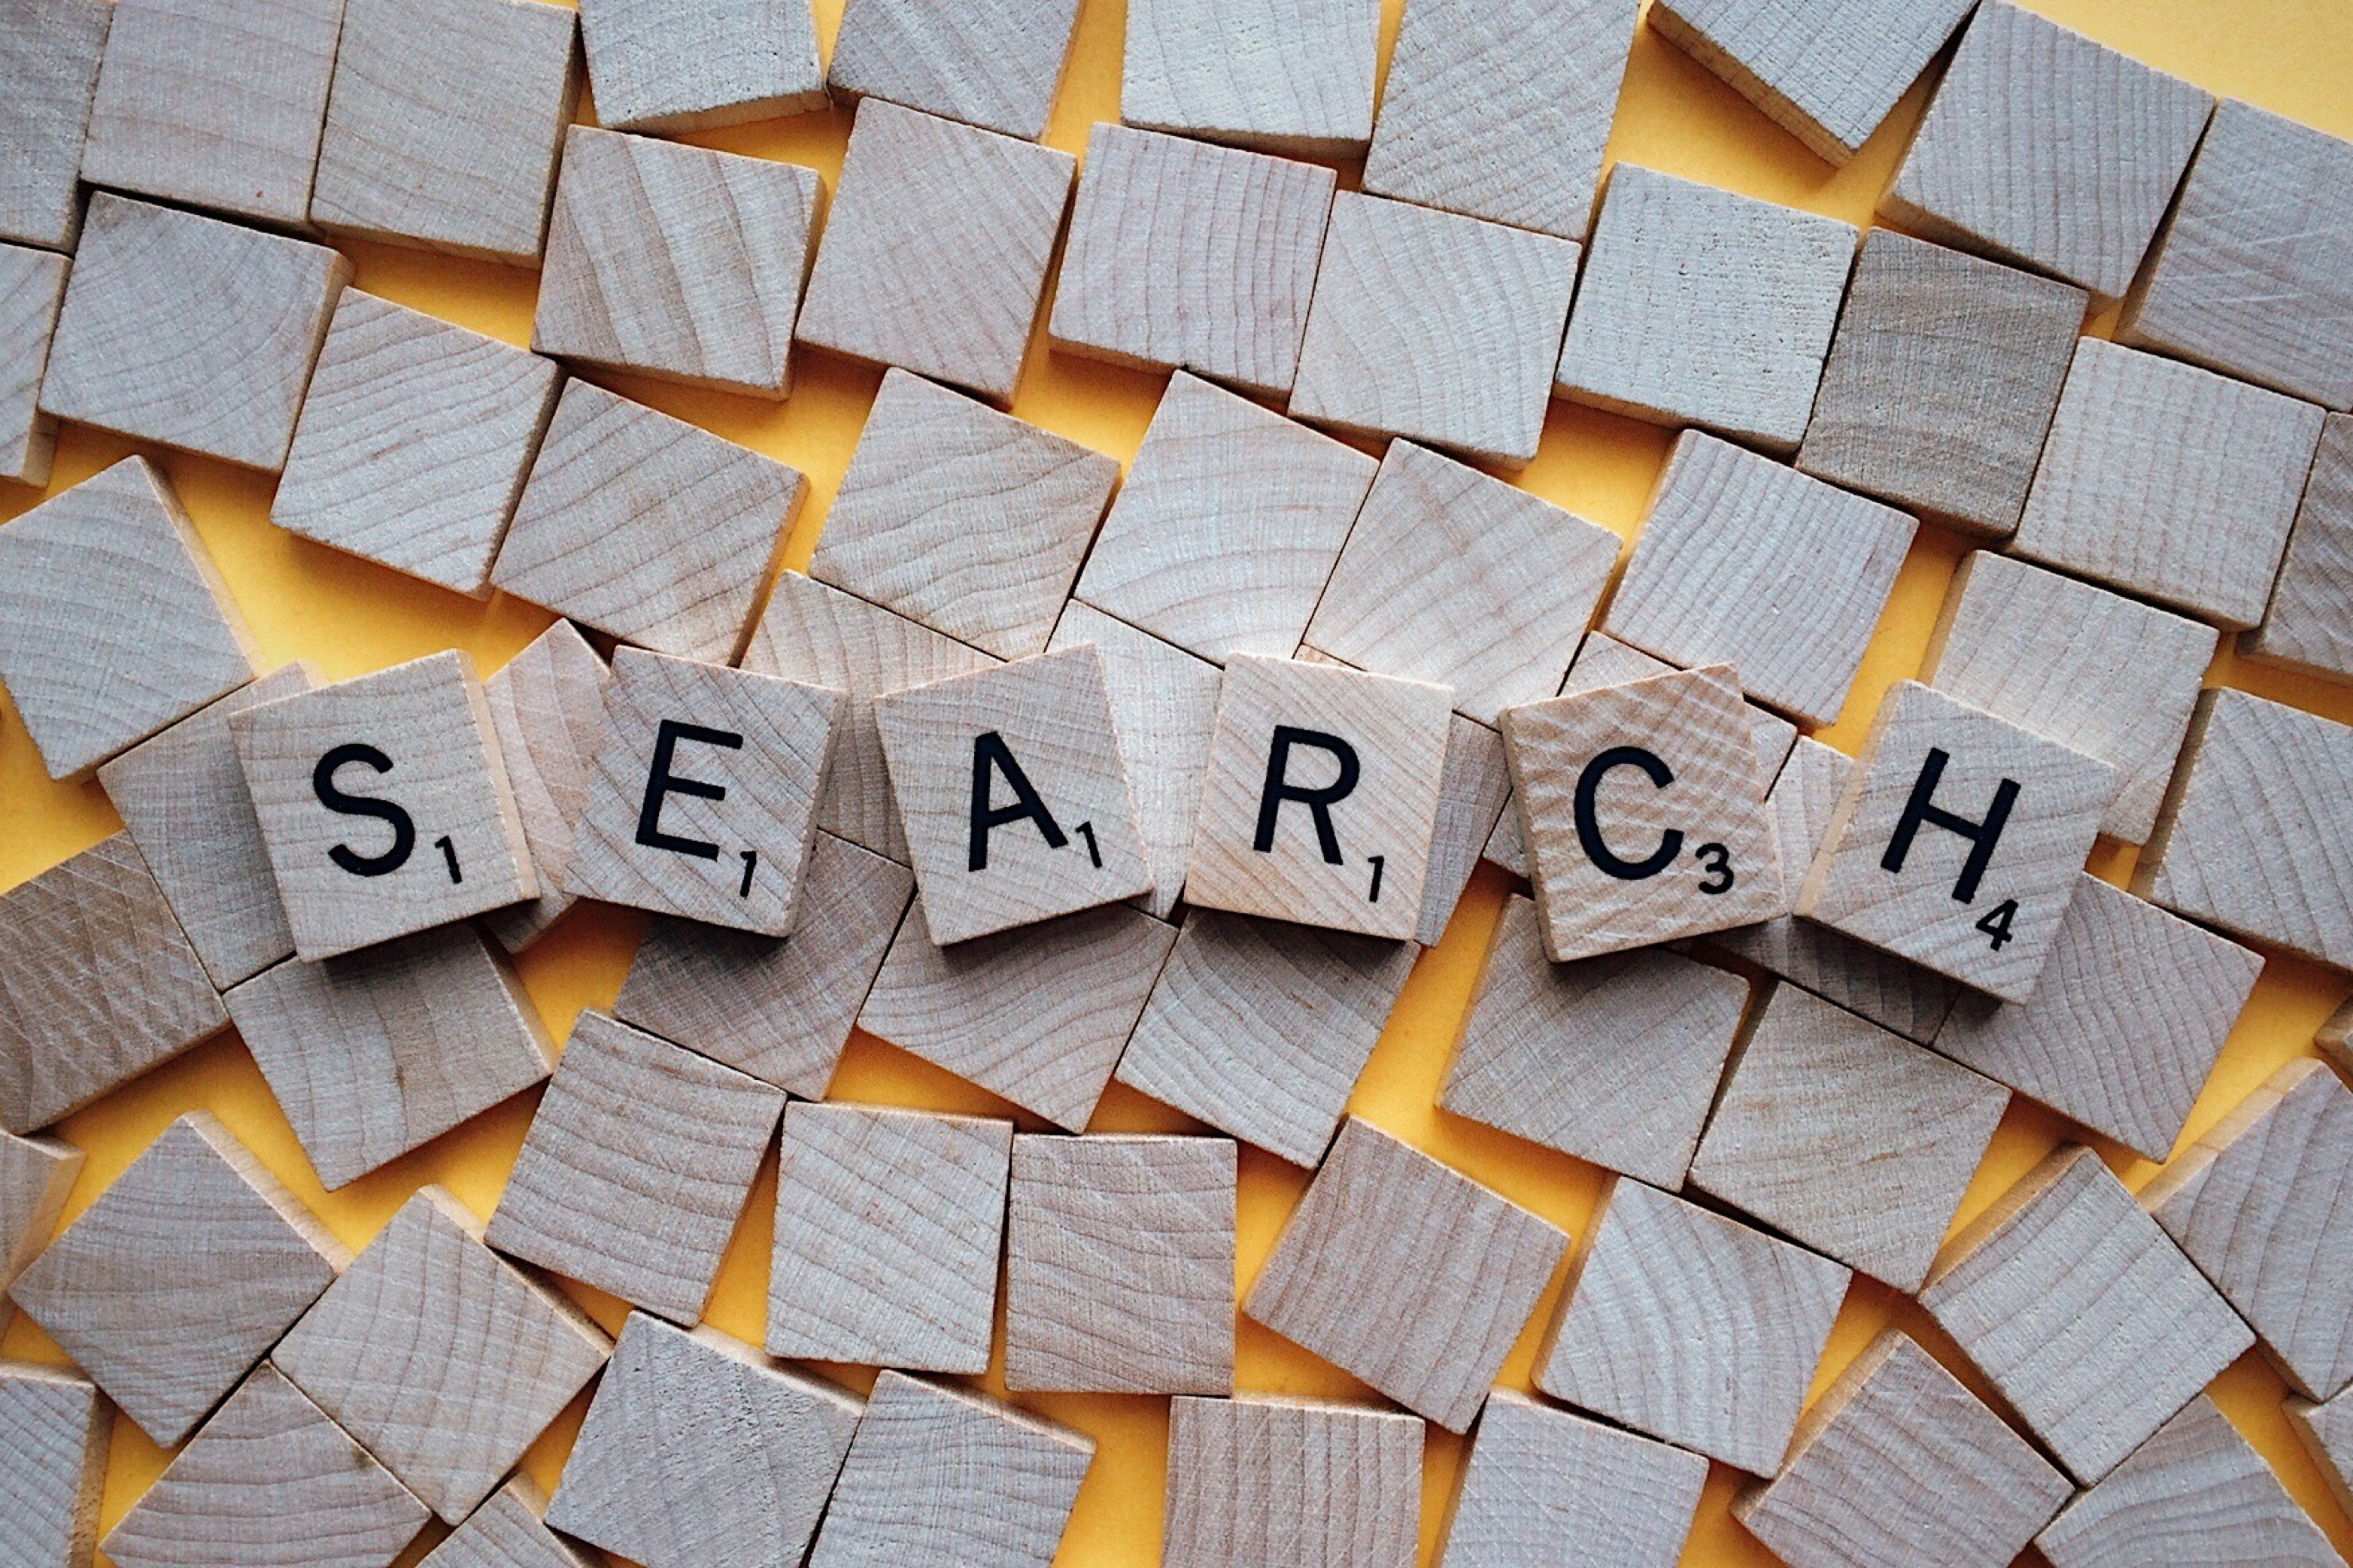 Fulltext search with Apache Ignite